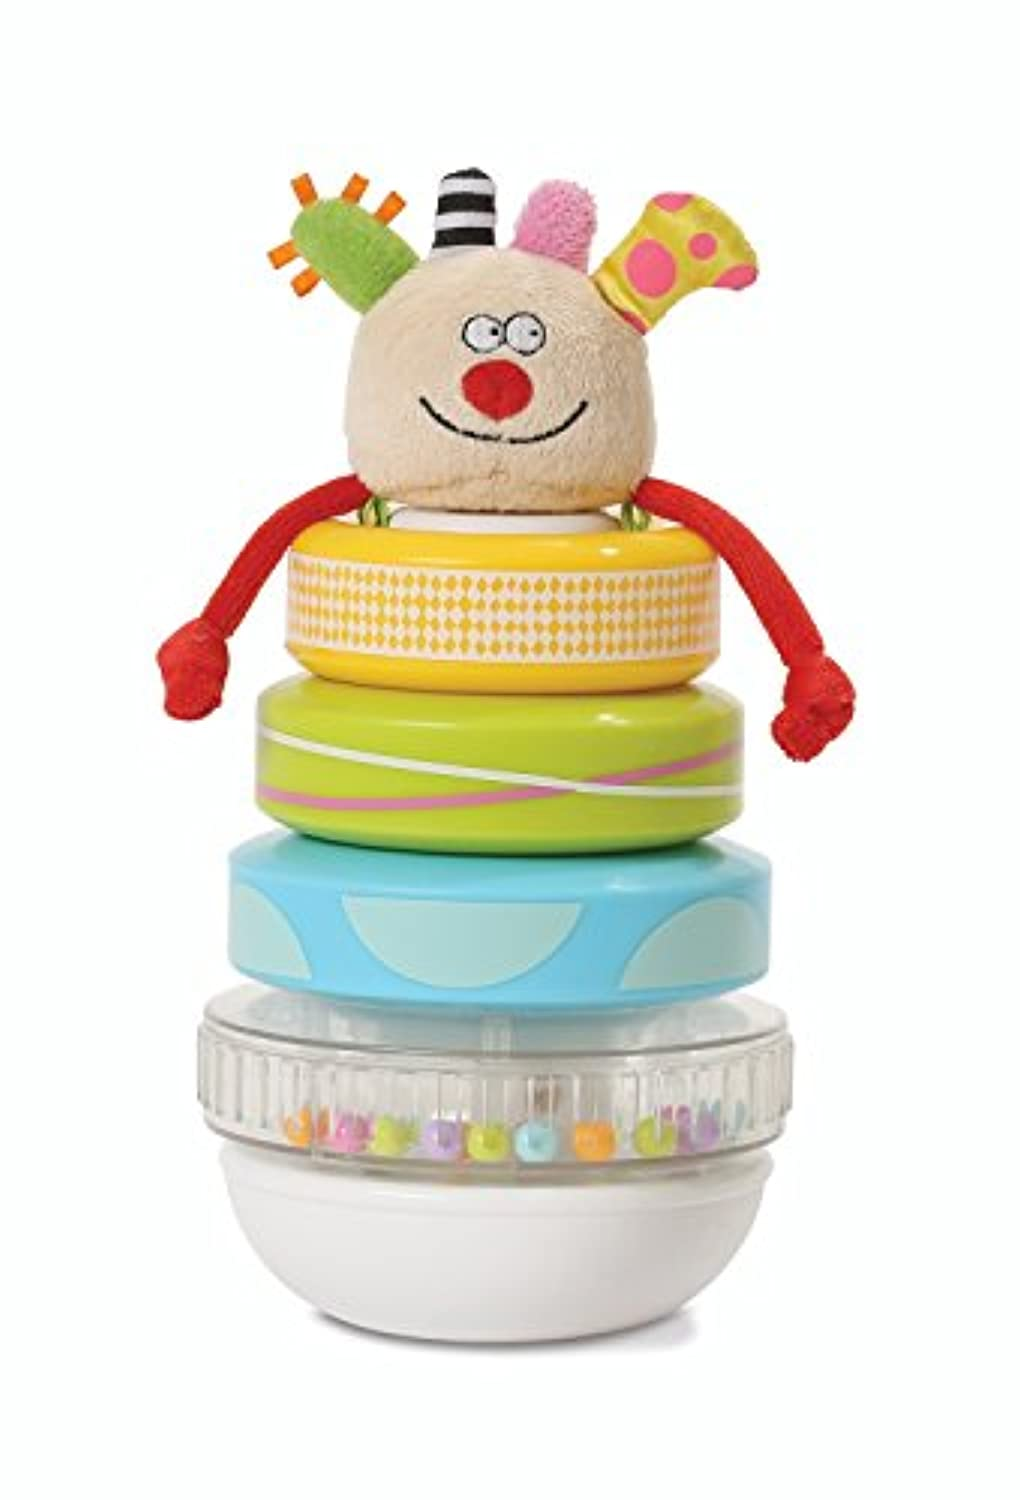 Taf Toys Kooky Stacker, Baby Activity Toy by Taf Toys